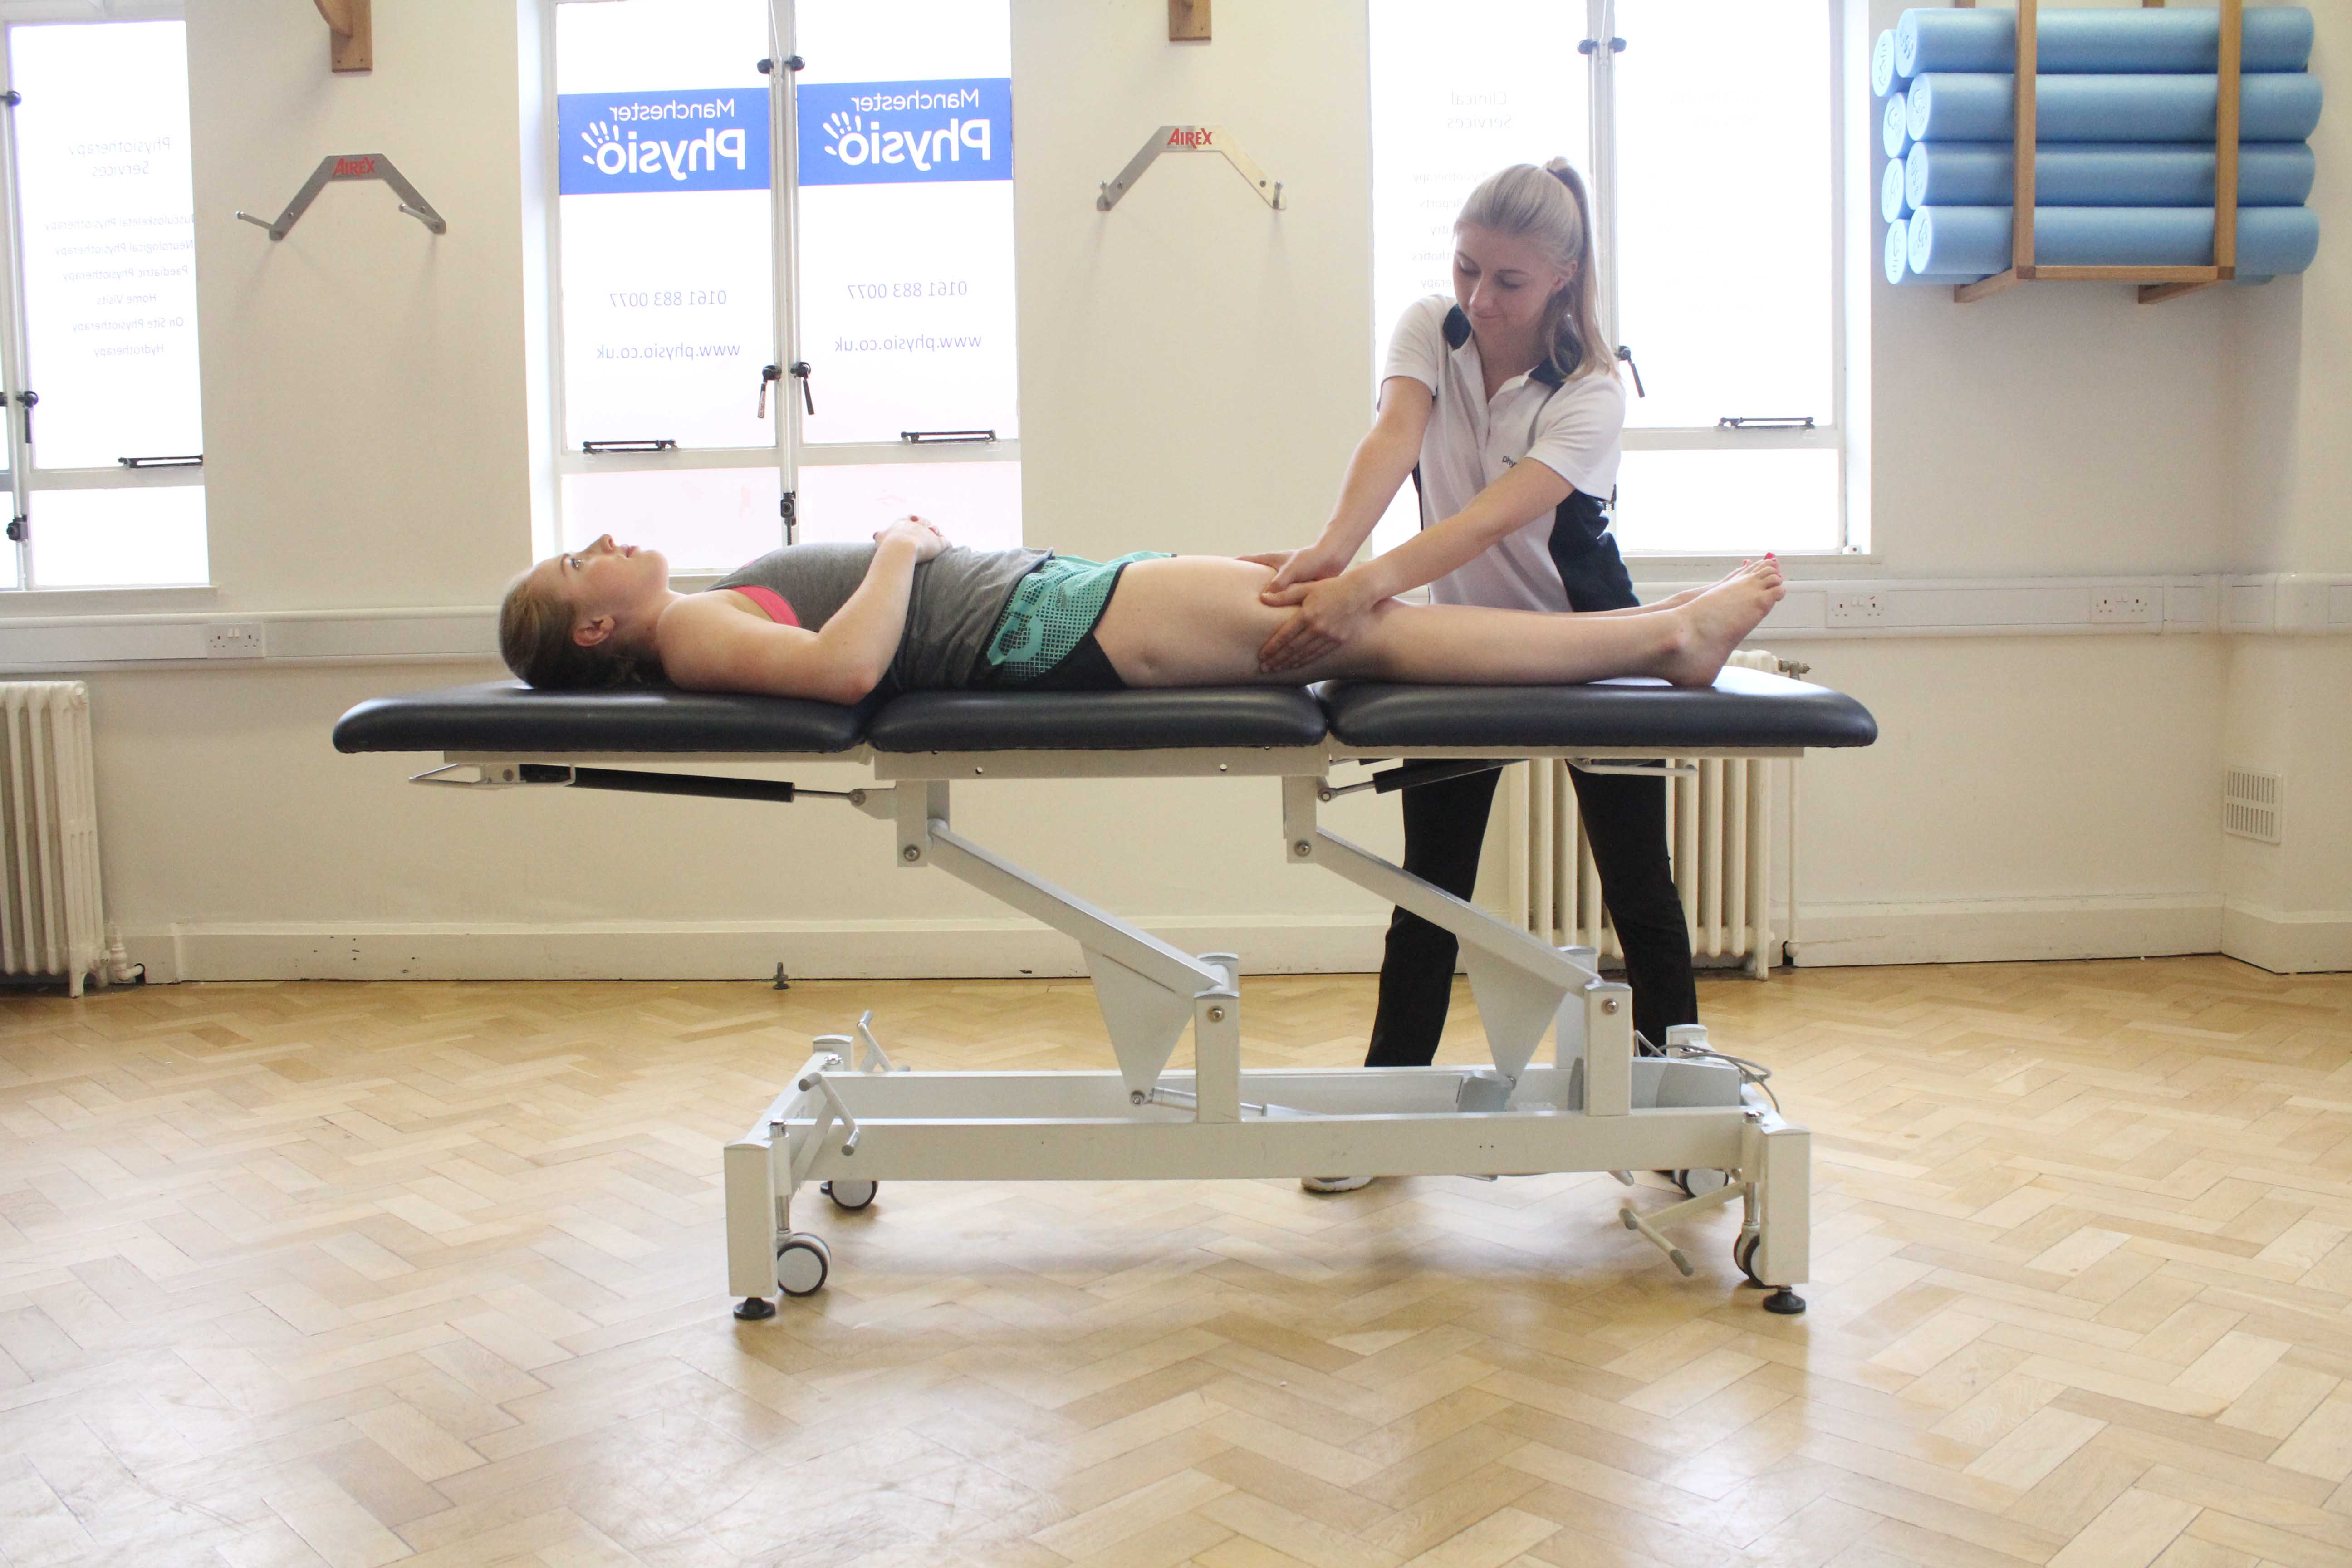 Post event massage targeting vastus lateralis muscle and illio-tibial band